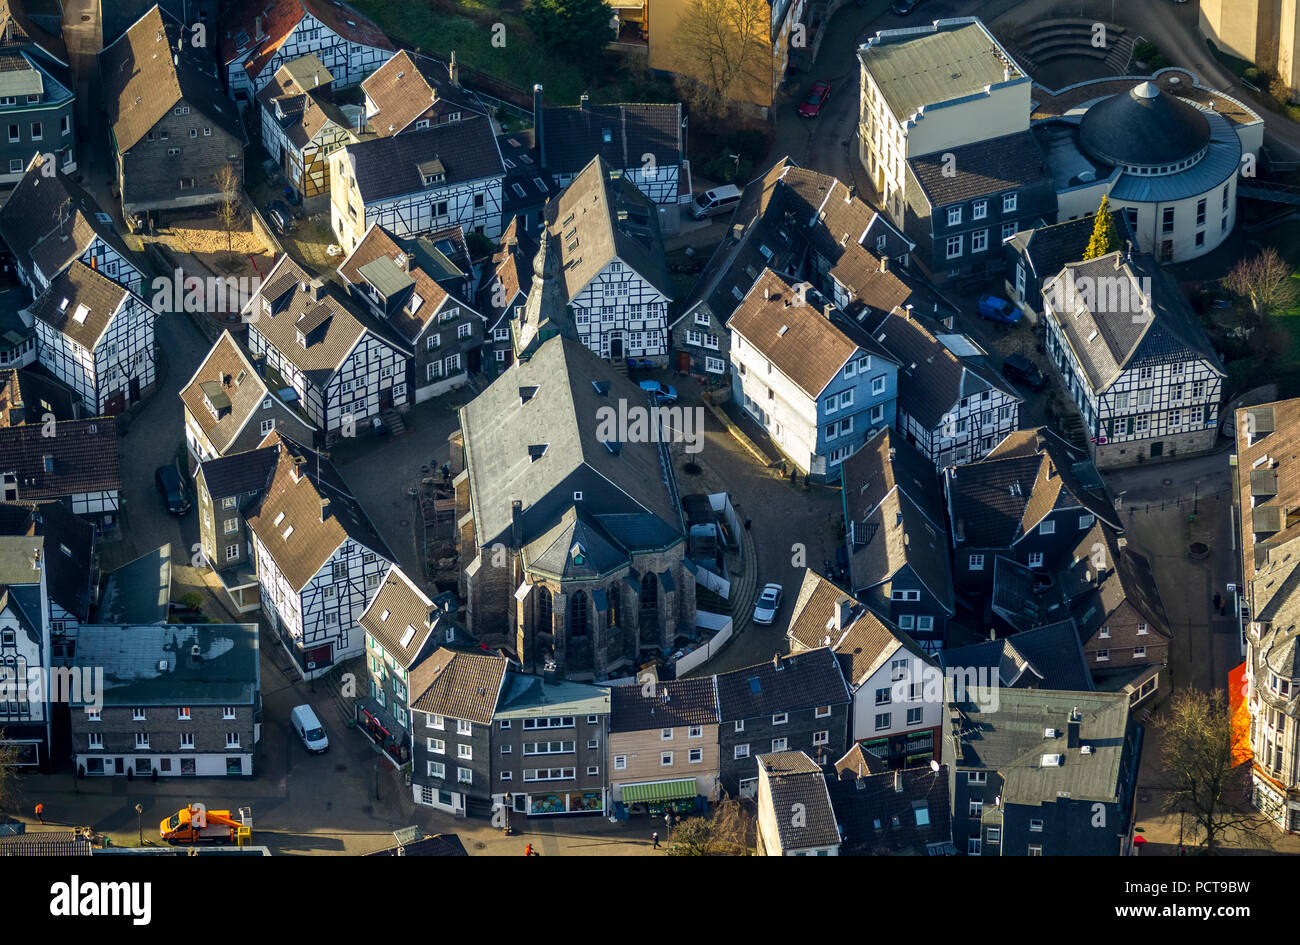 Town centre of Neviges, Protestant Church, Neviges, Velbert, Ruhr area - Stock Image